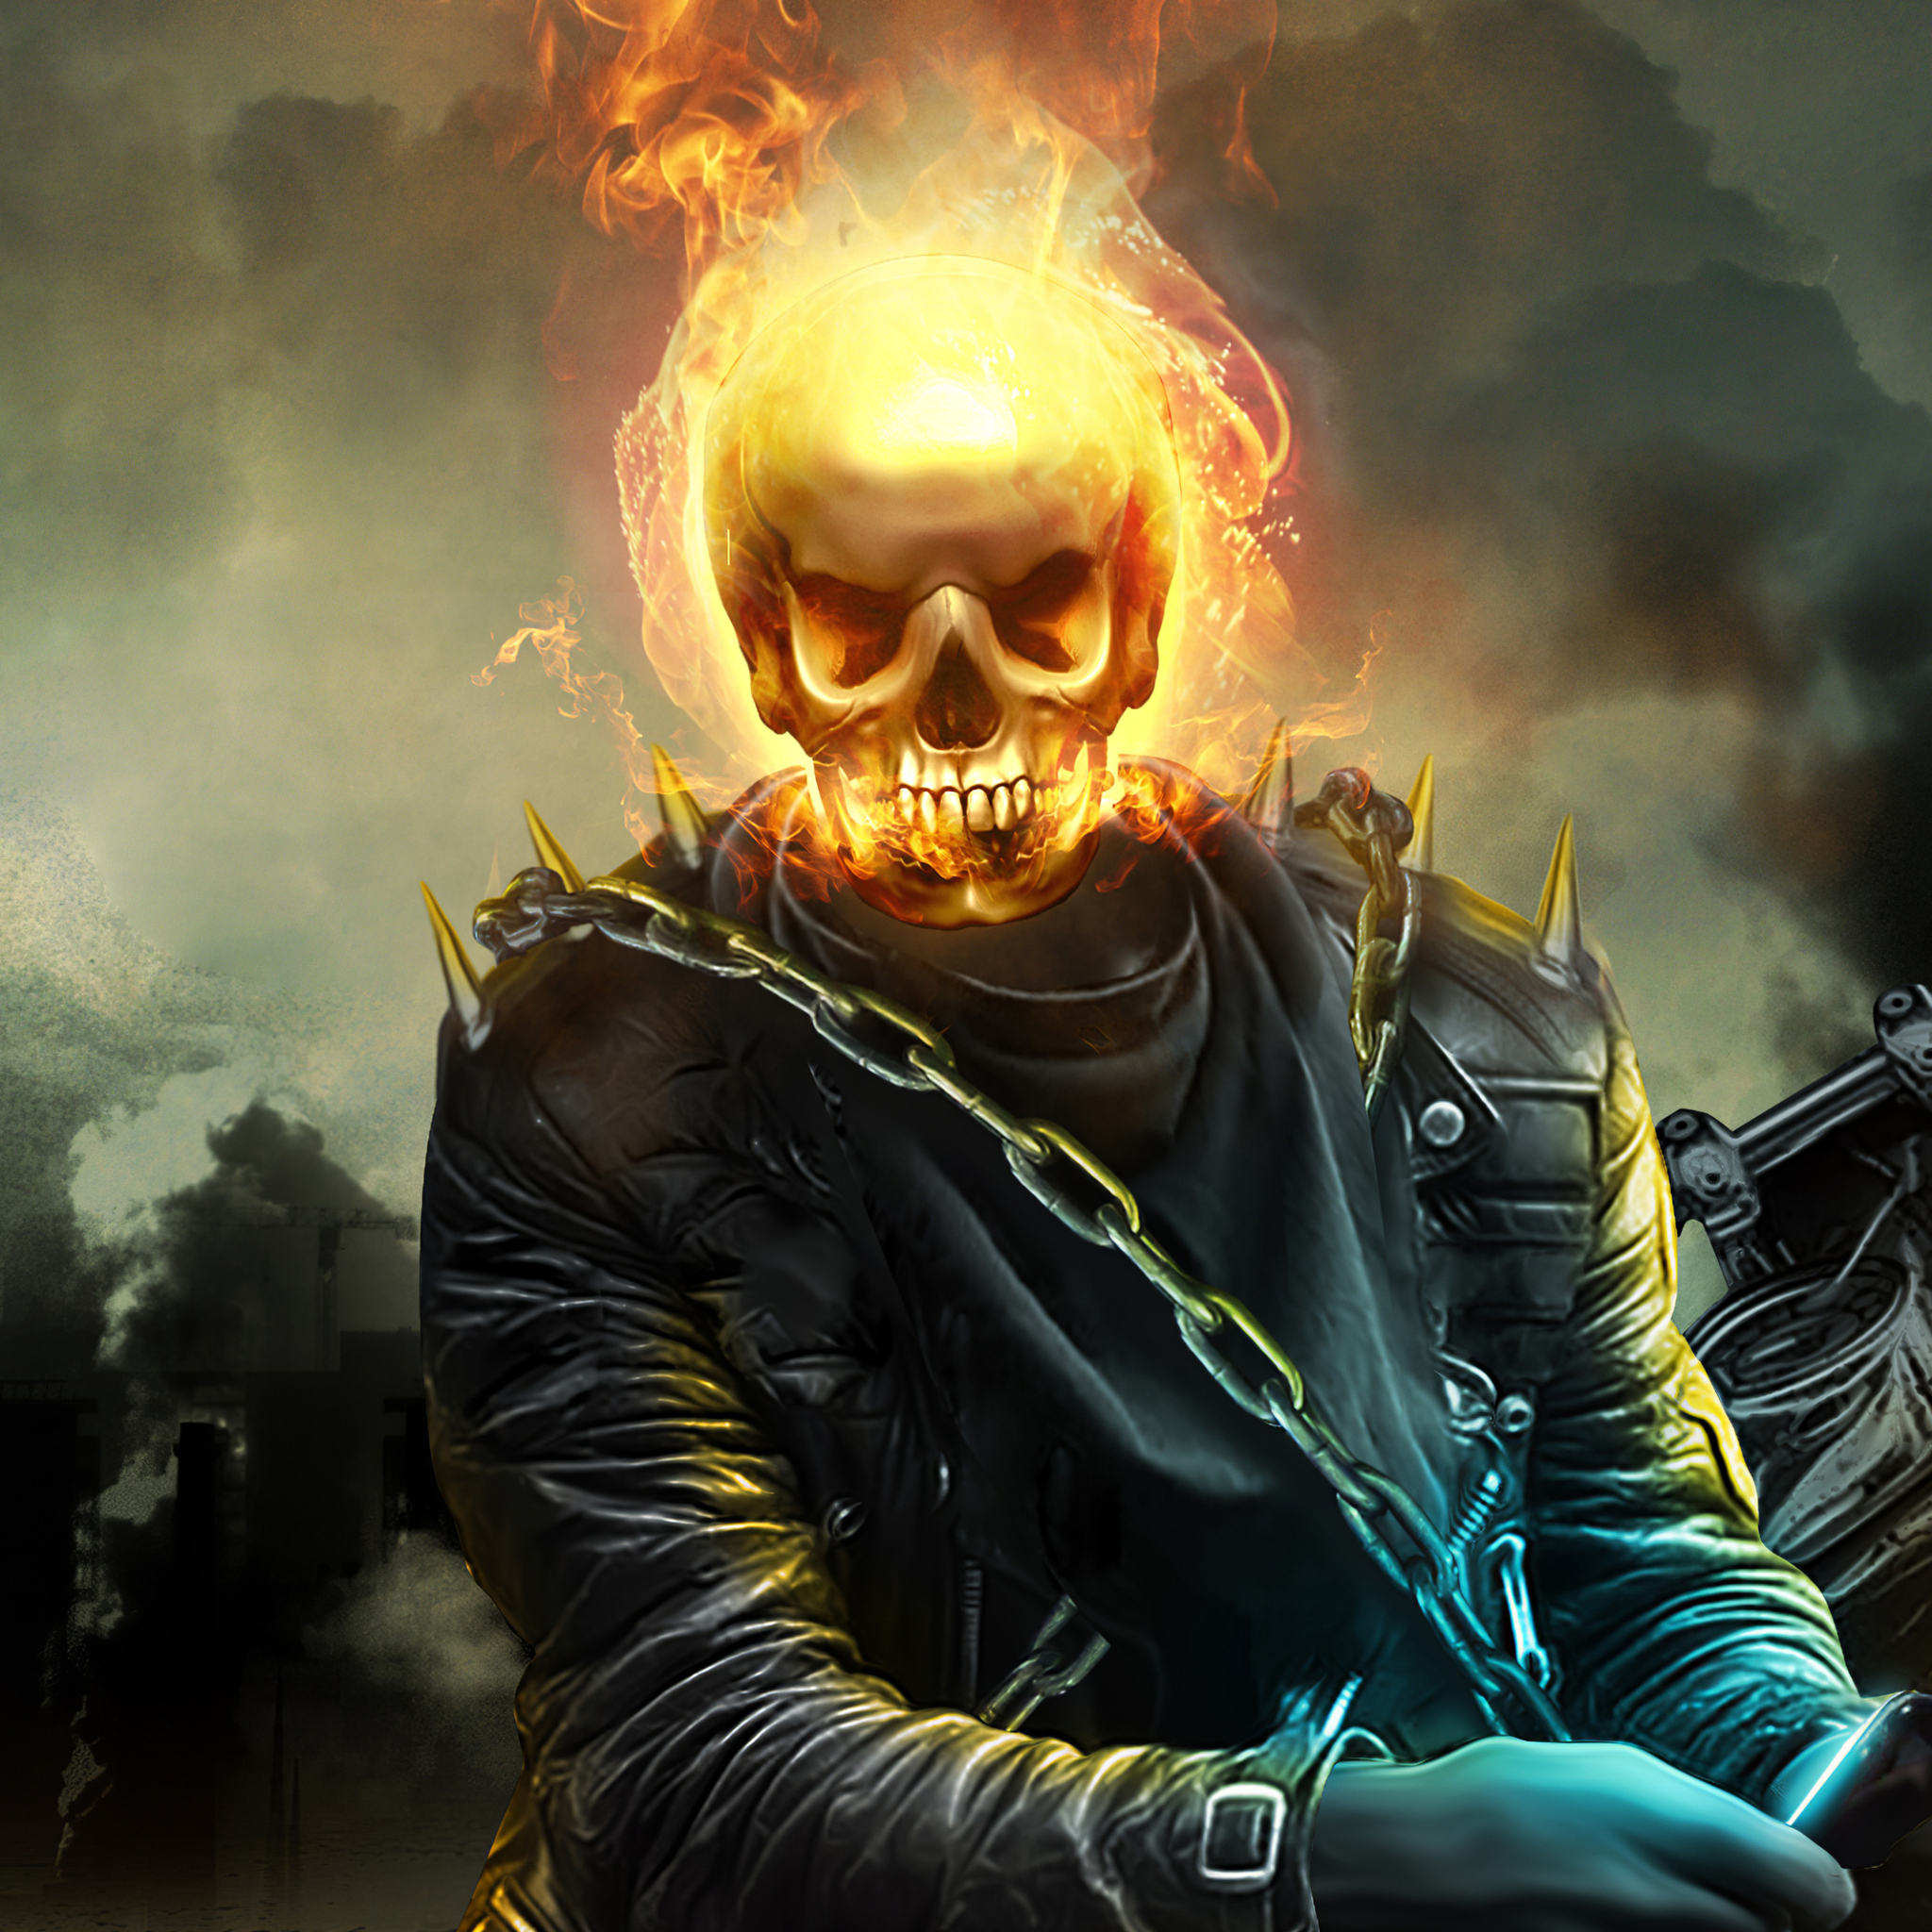 2048x2048 Ghost Rider 4k 2020 Artwork Ipad Air HD 4k